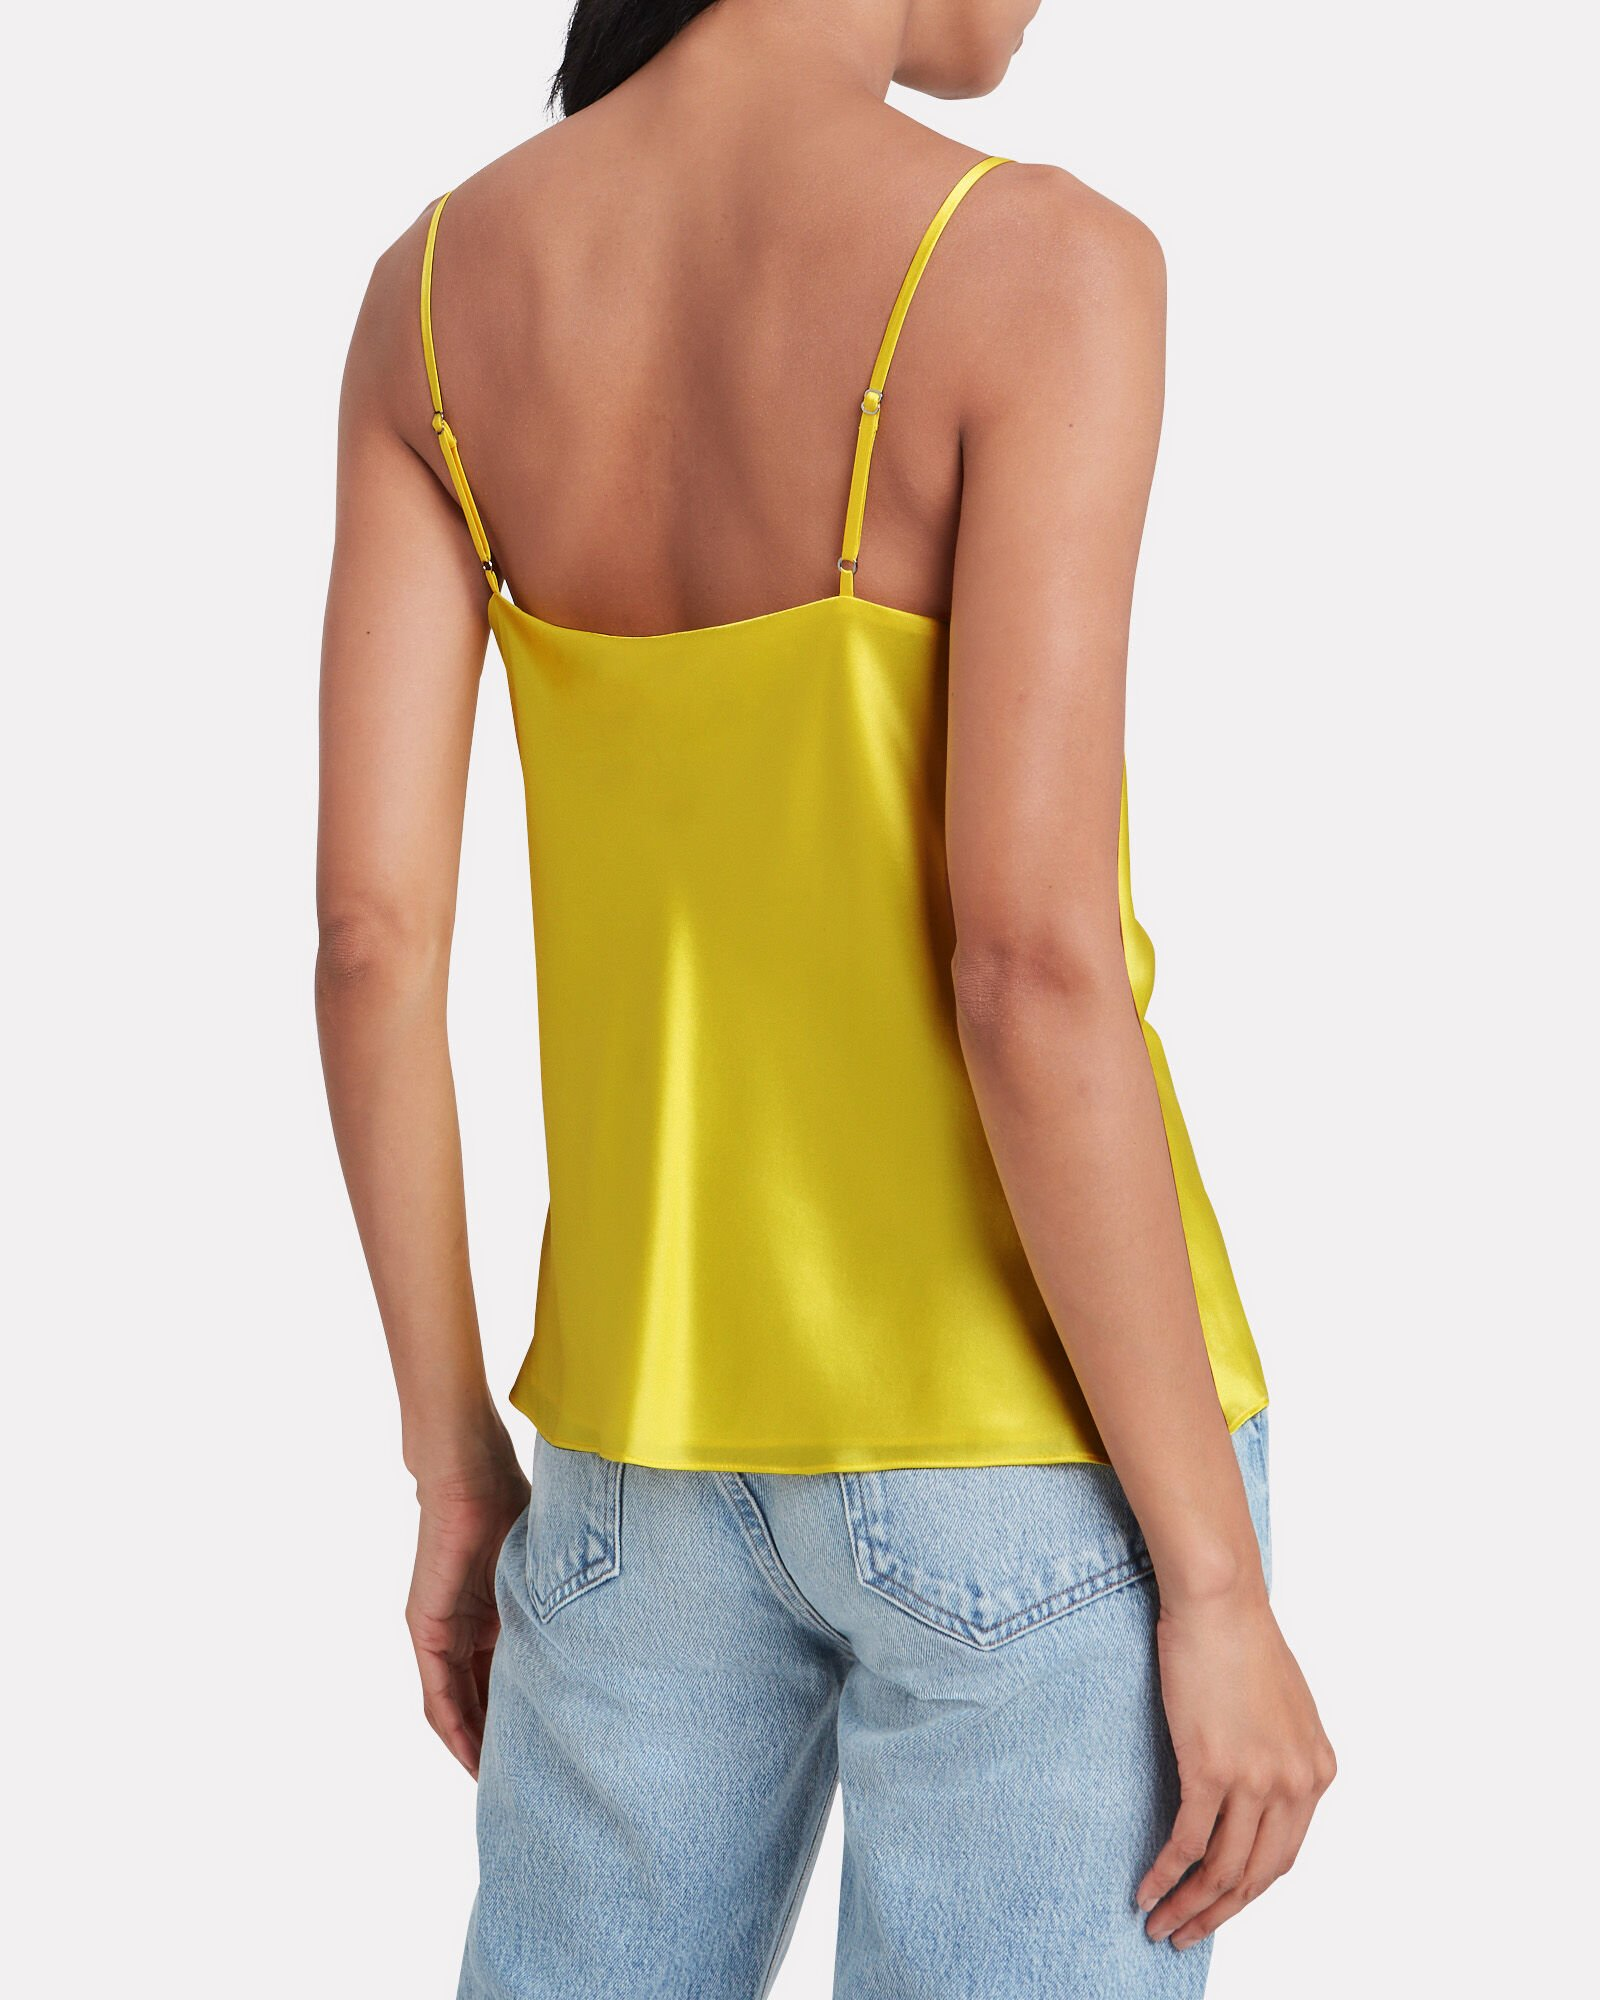 Kay Silk Cowl Neck Camisole, BRIGHT YELLOW, hi-res